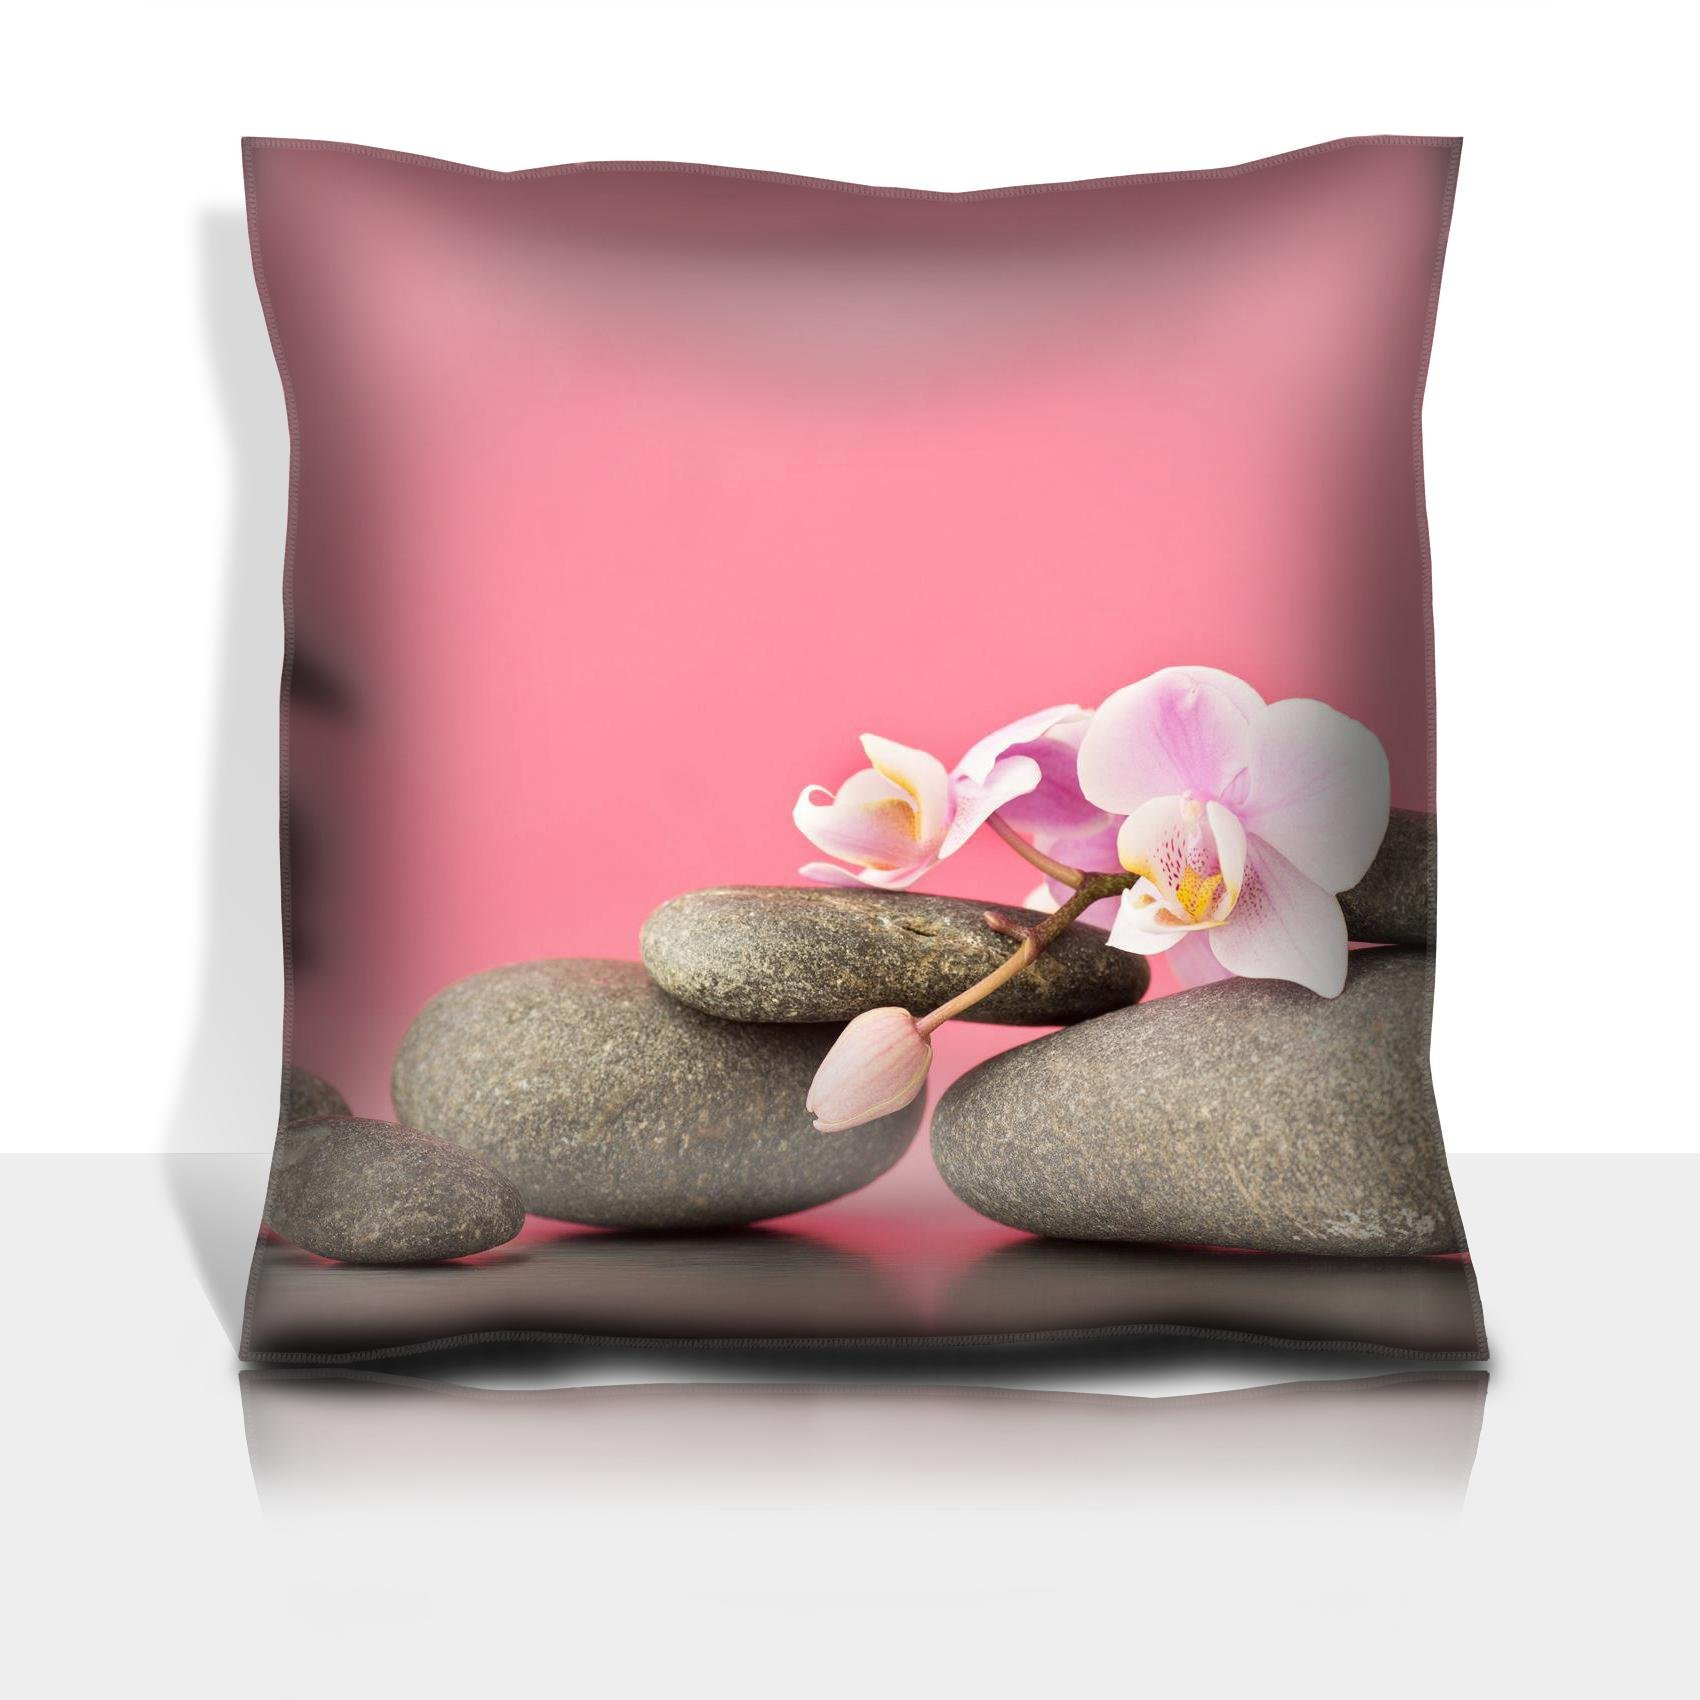 MSD Throw Pillowcase Polyester Satin Comfortable Decorative Soft Pillow Covers Protector sofa 16x16, 1pack IMAGE ID 27140351 Spa stones on pink background with orchids